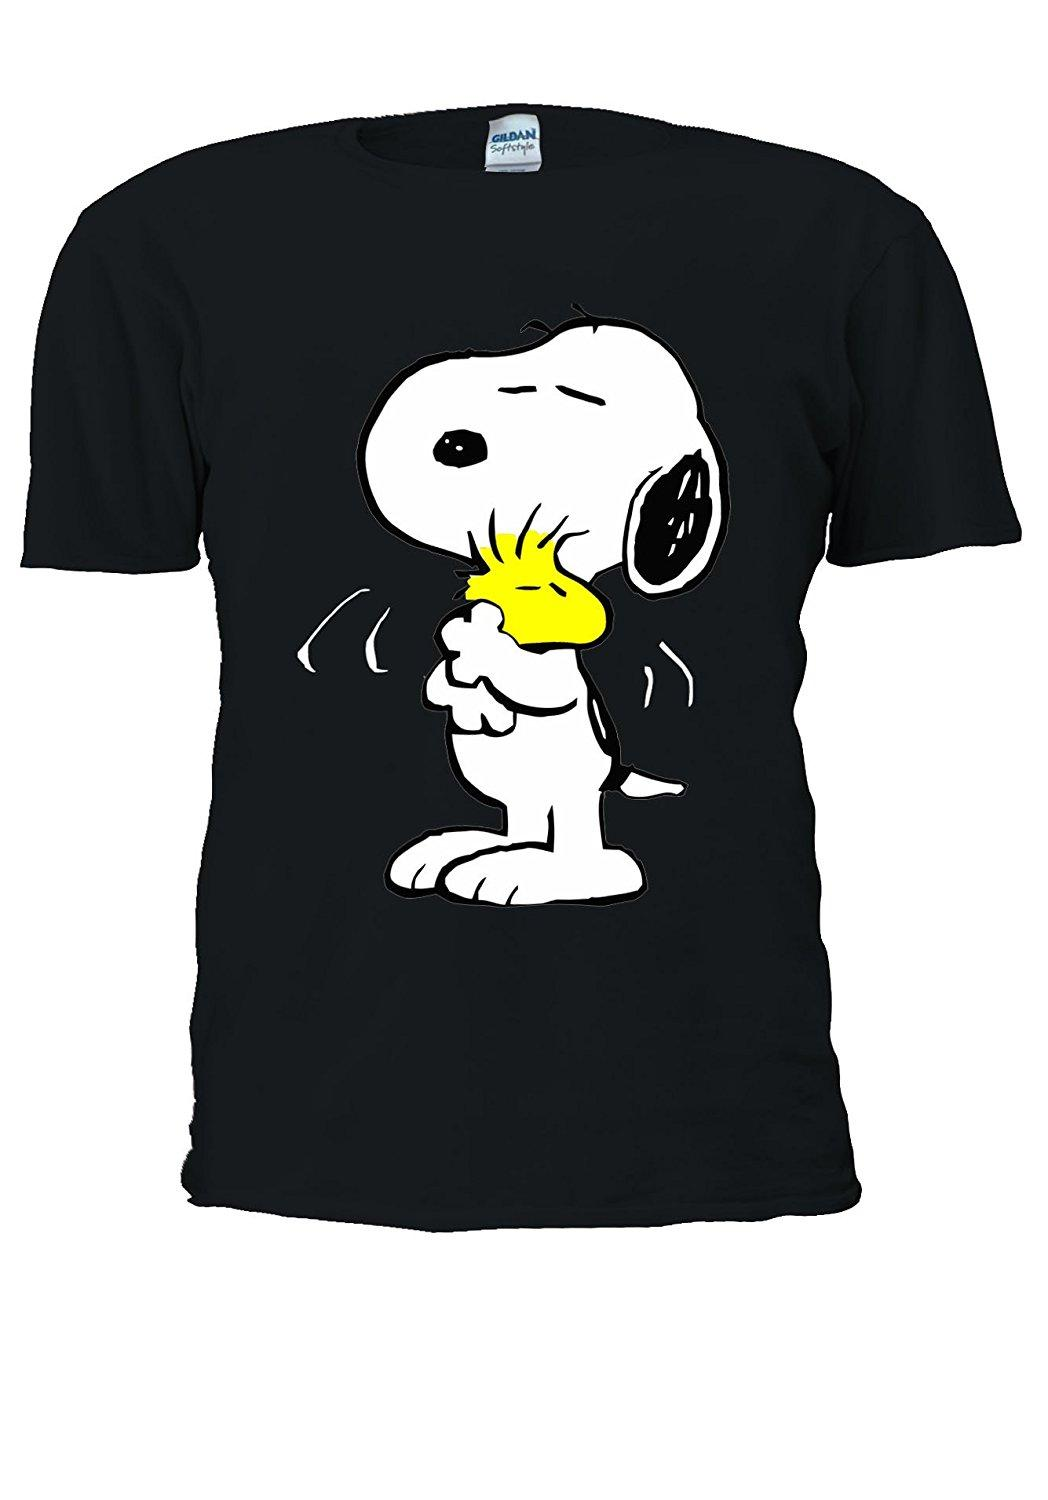 b825bc03a707a4 Men Short Sleeves T Shirt Snoopy PEANUTS Cartoon Happy Cute Men Women  Unisex Top T Shirt Humorous T Shirt Cool And Funny T Shirts From Bstdhgate,  ...